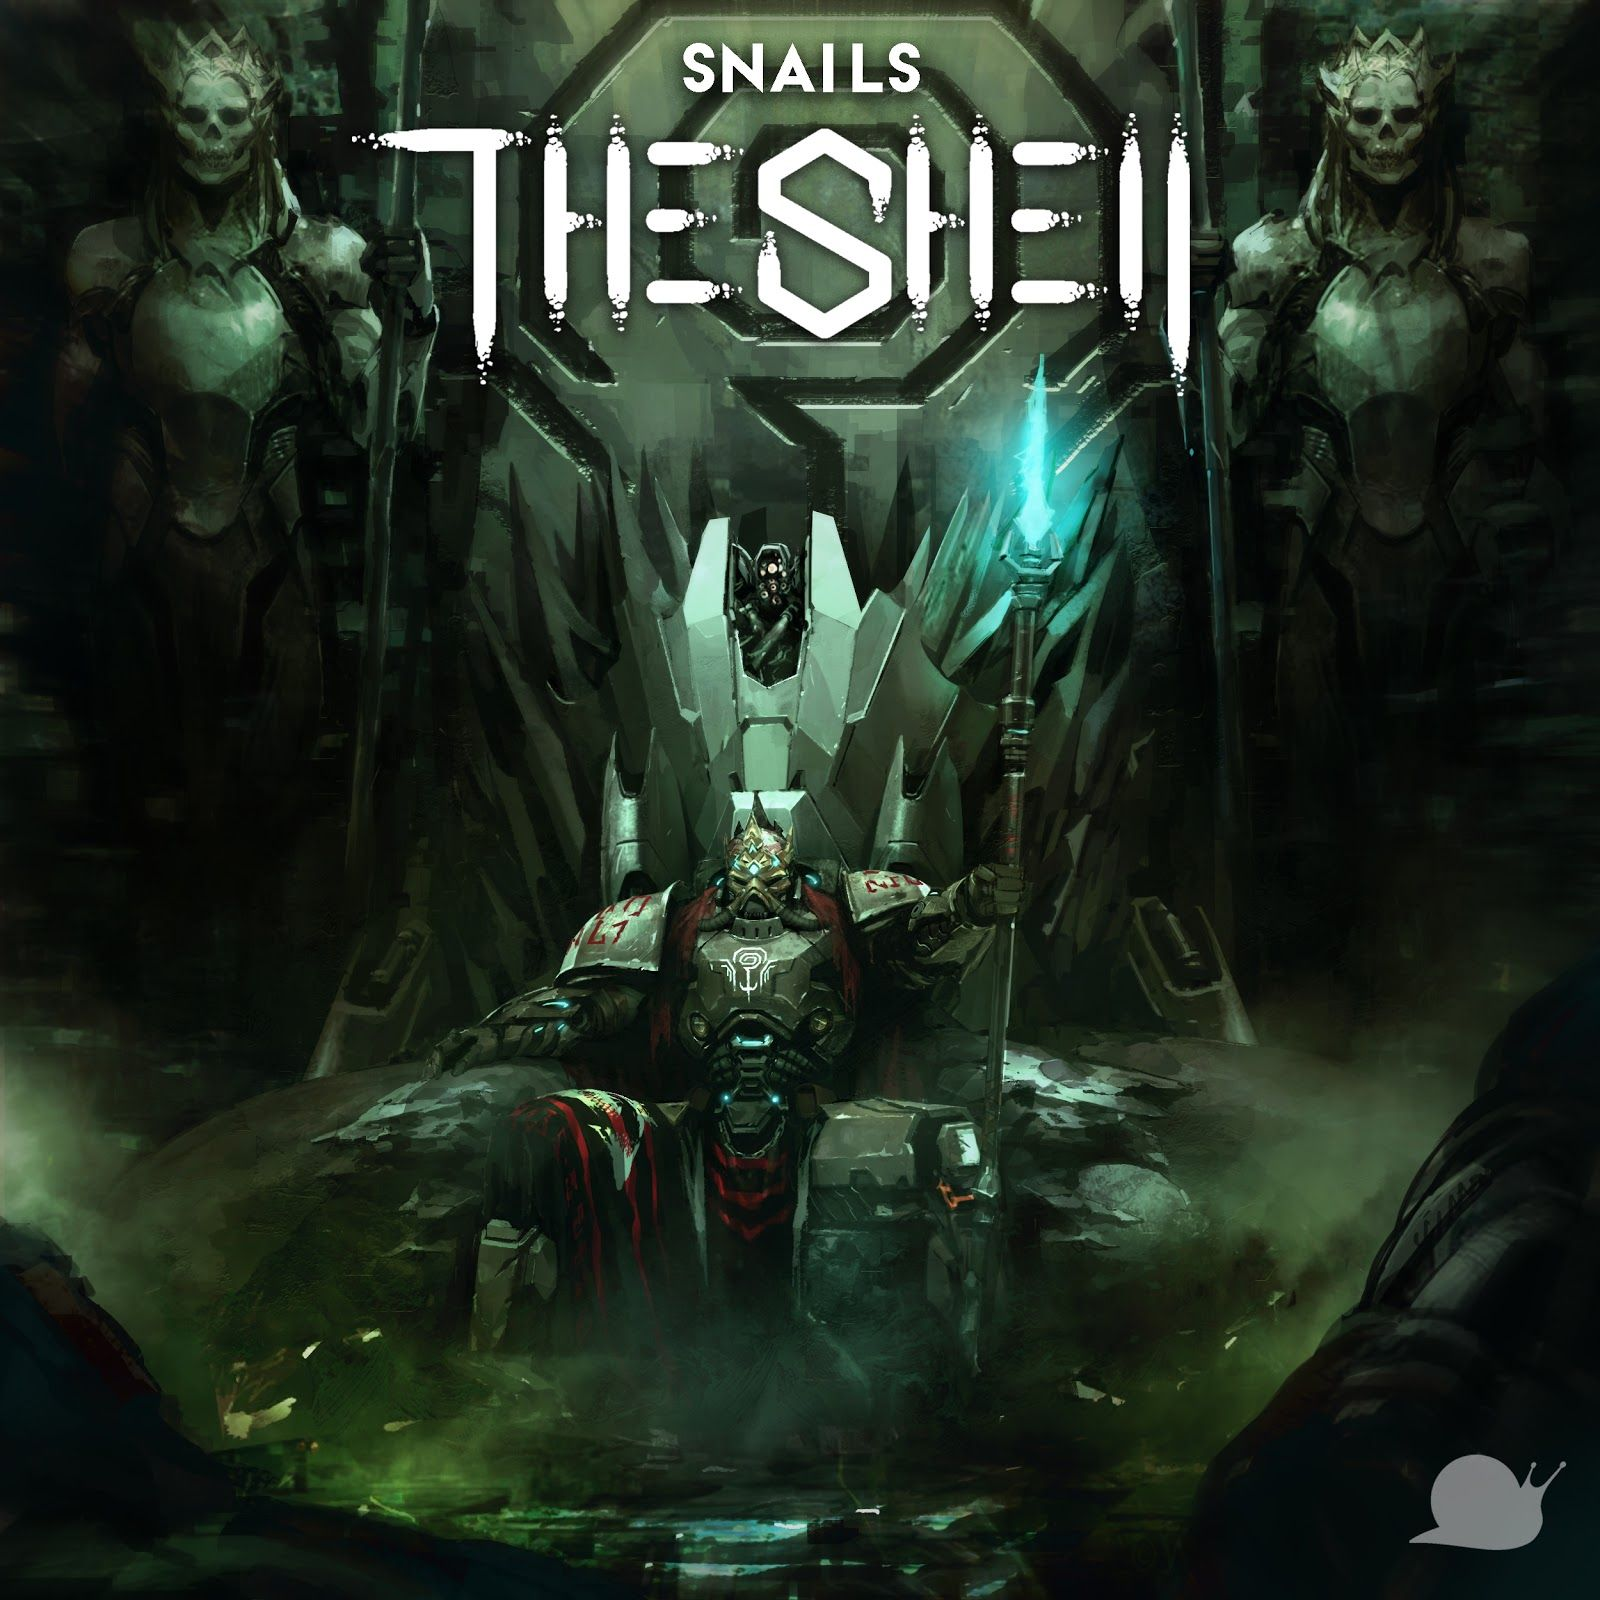 snails-the_shell-final.jpg